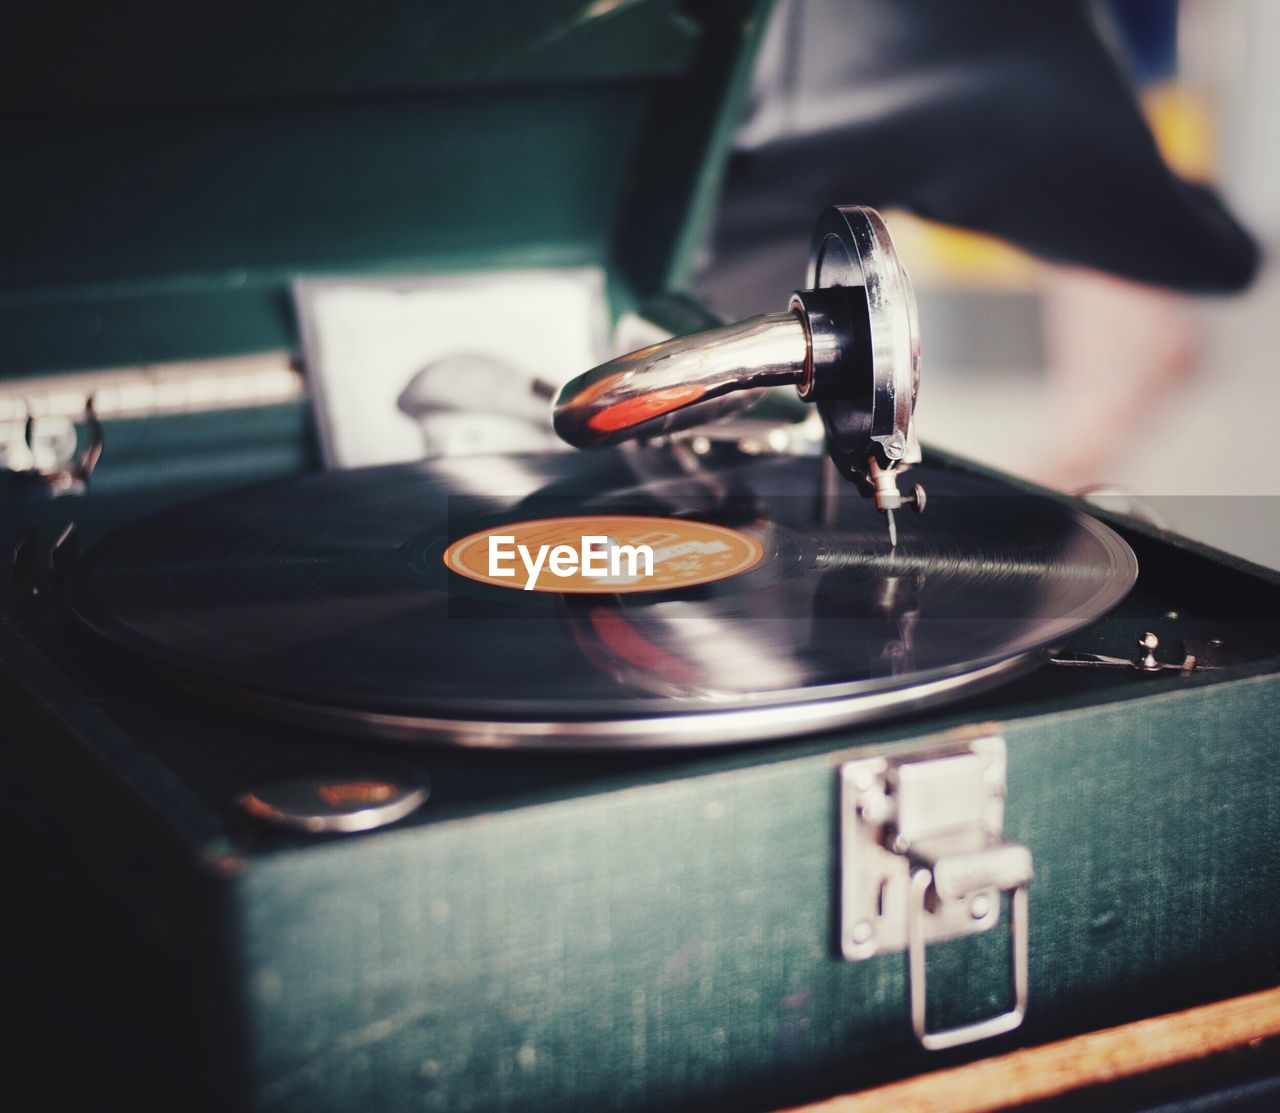 old-fashioned, close-up, no people, record, indoors, day, record player needle